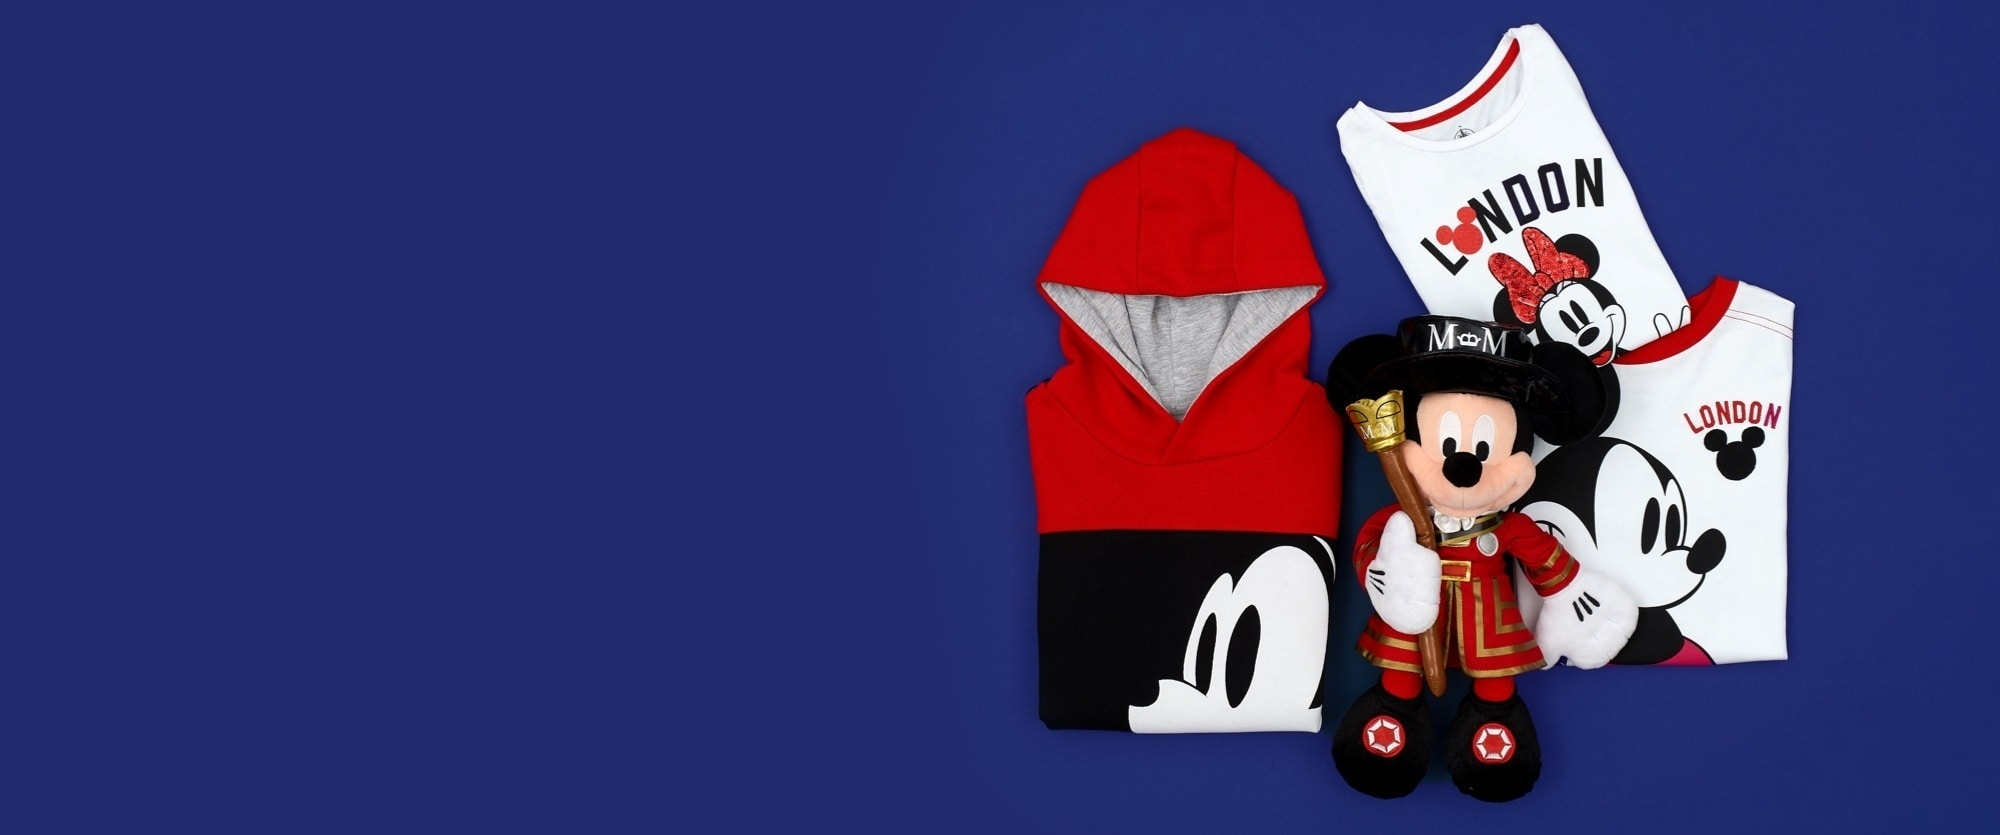 Découvrez la collection Disney Cities sur shopDisney